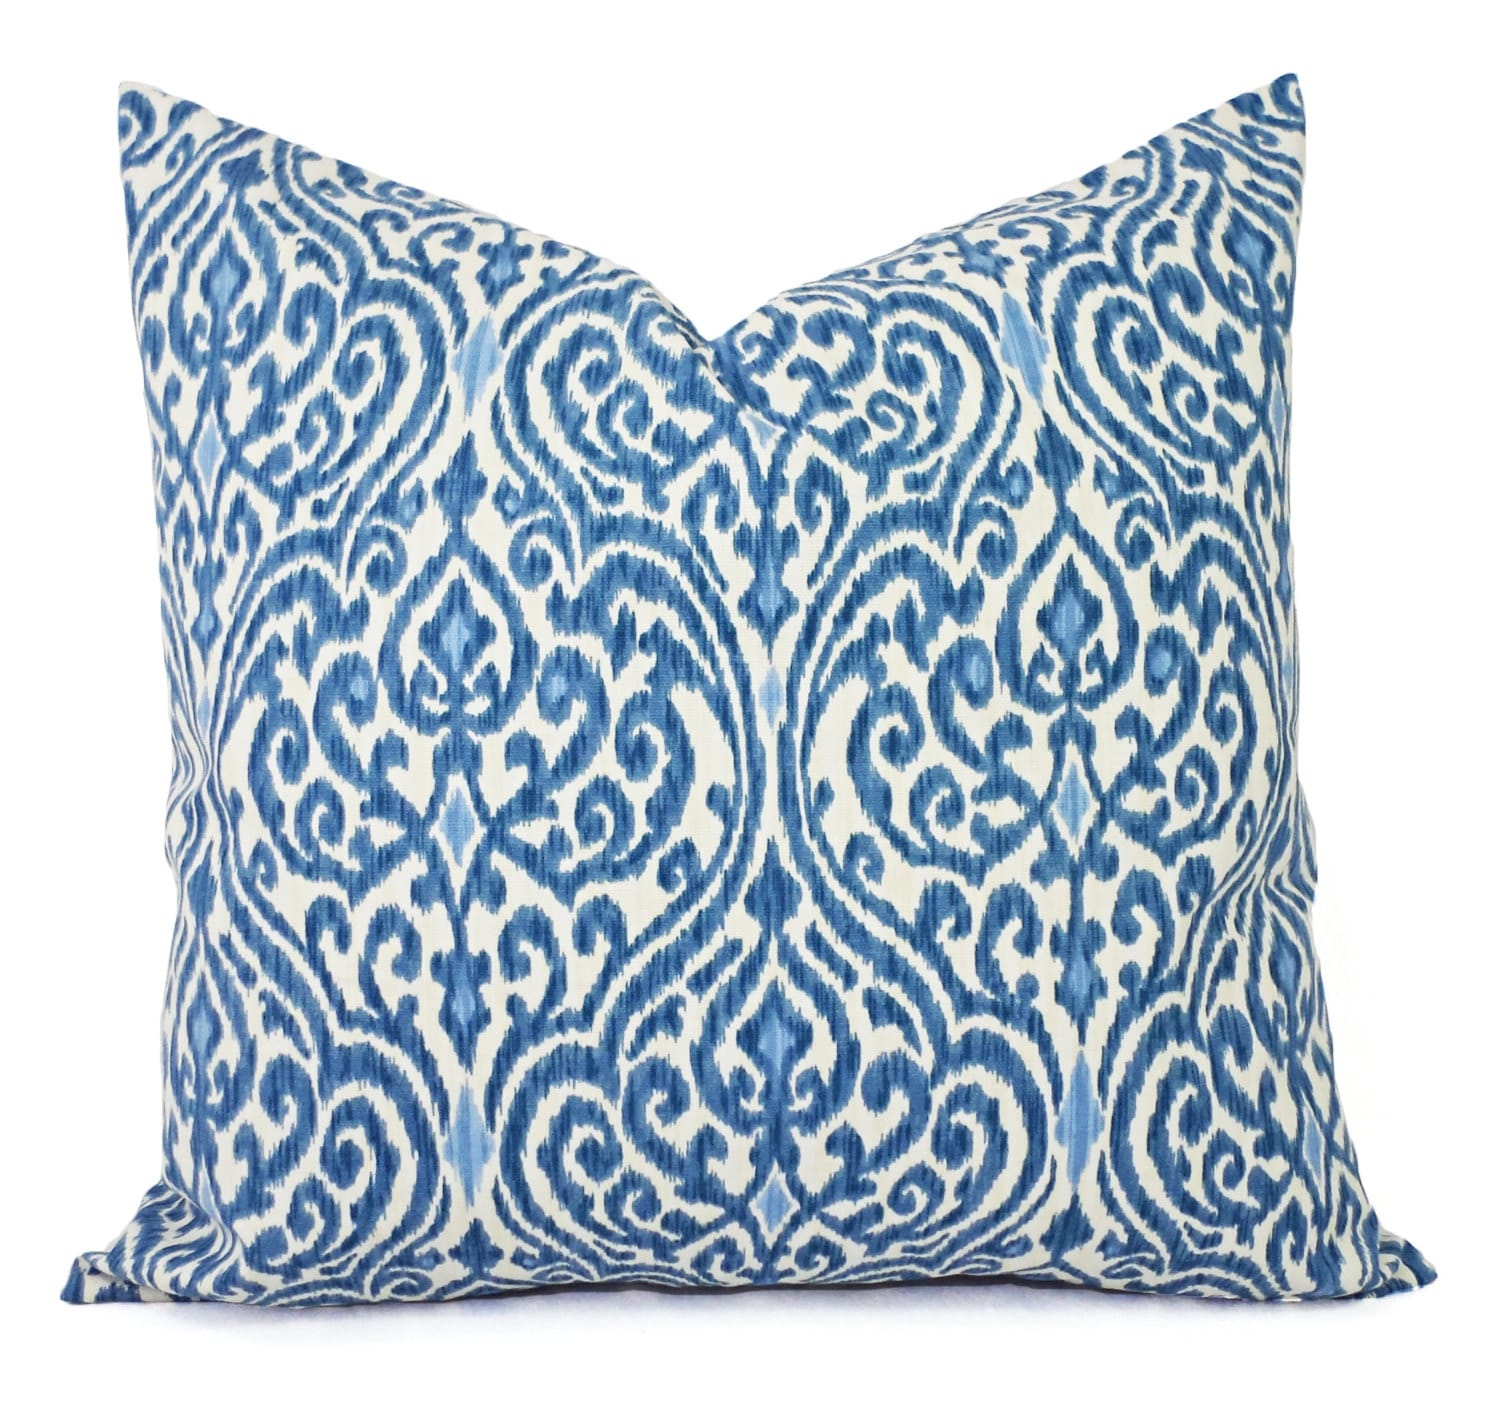 Decorative Pillows Two Decorative Pillow Covers Blue And